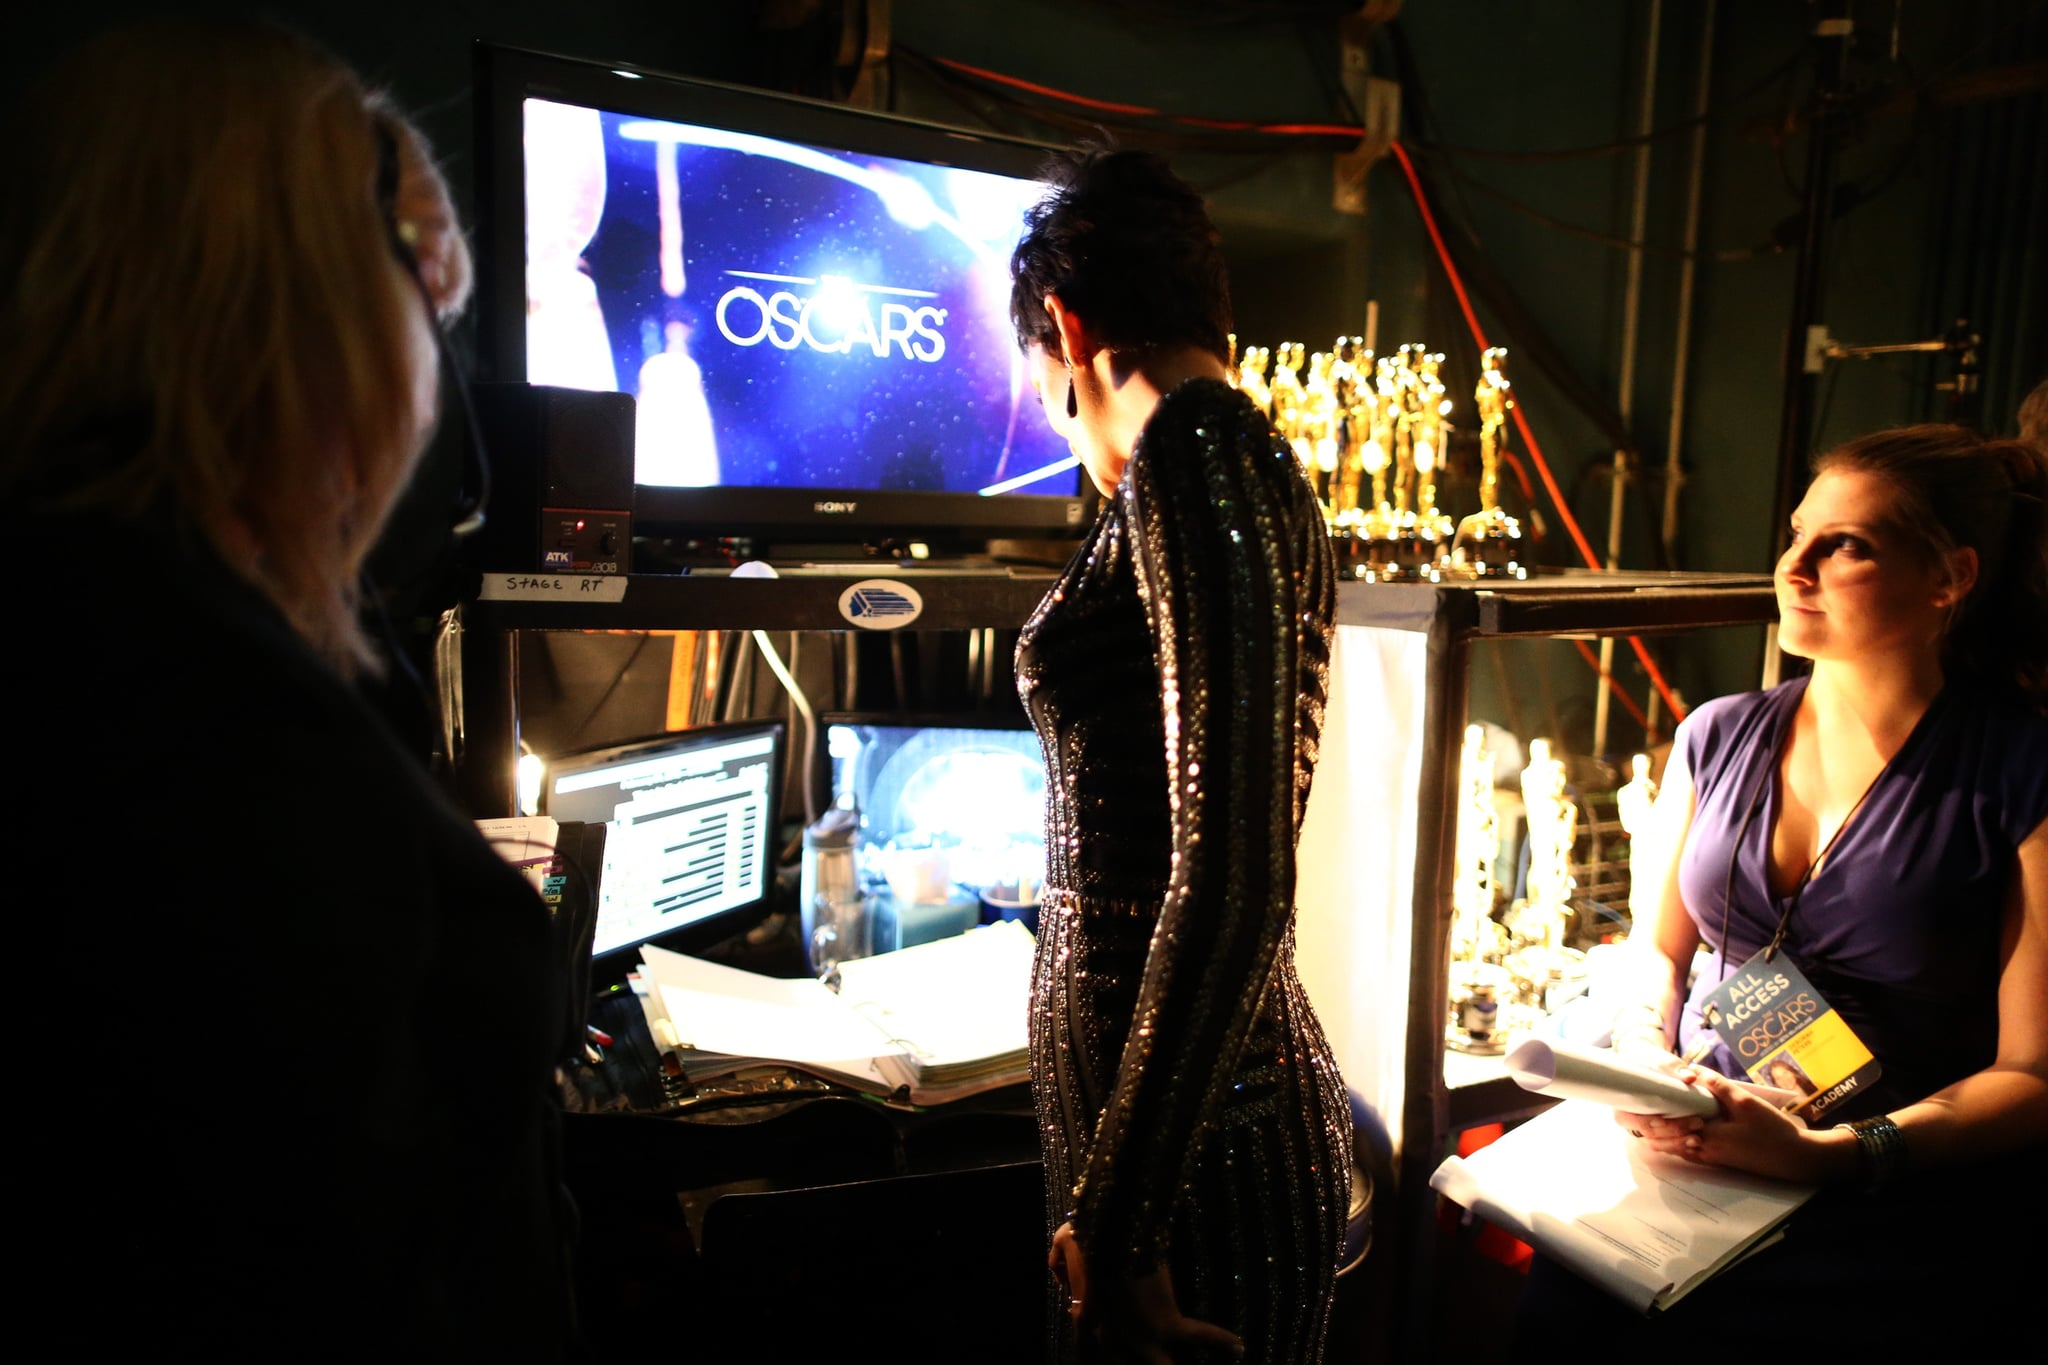 Halle Berry backstage at the 2013 Oscars.